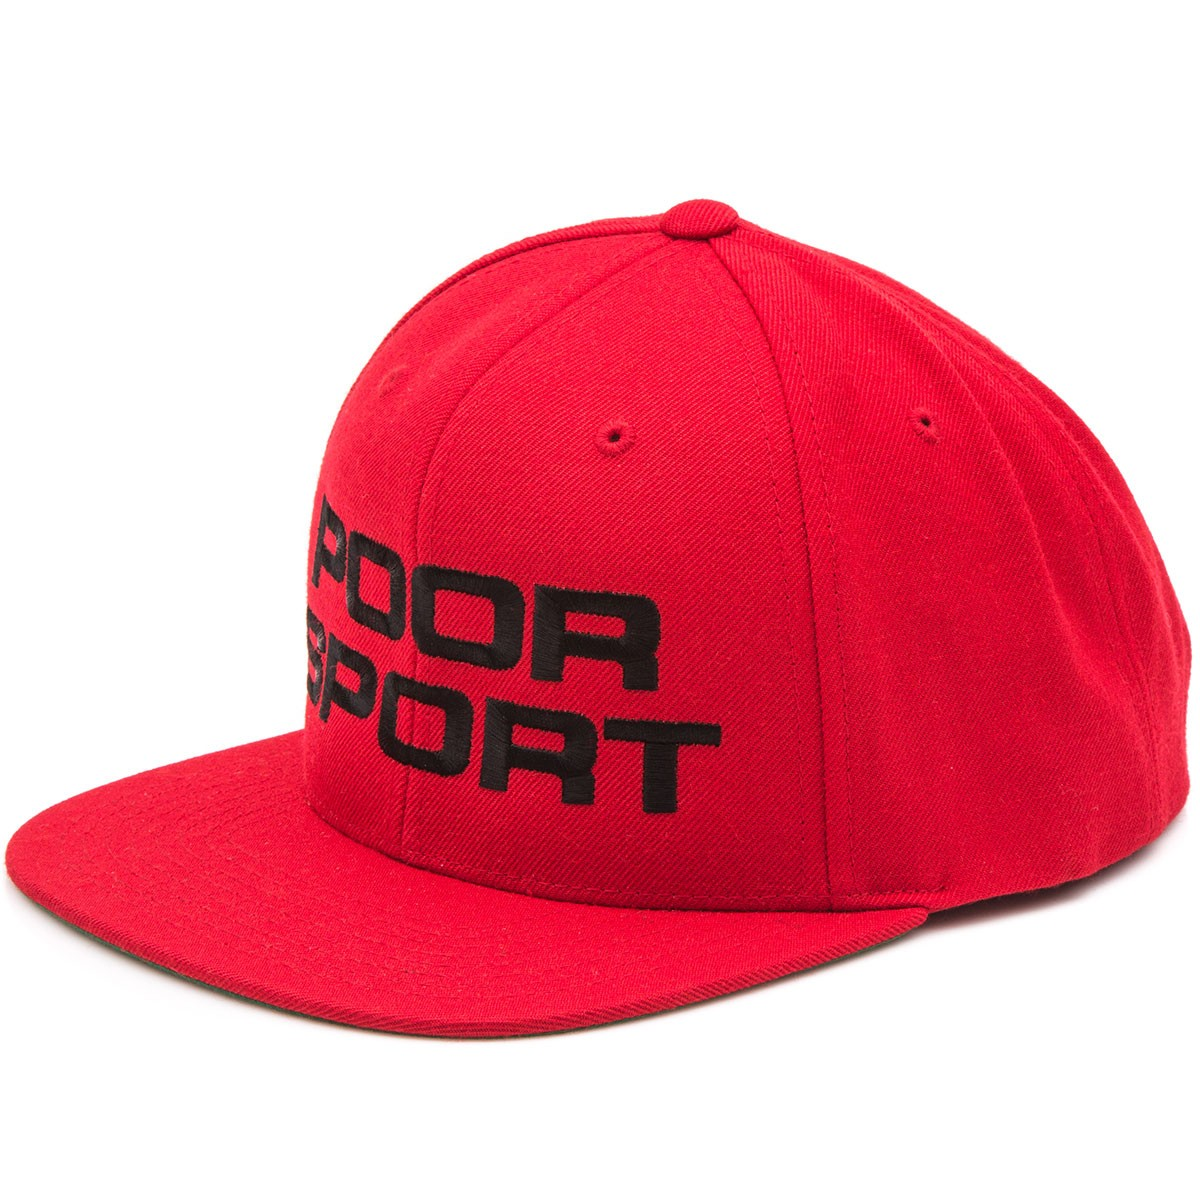 CLSC Yolo Snapback Hat - Red